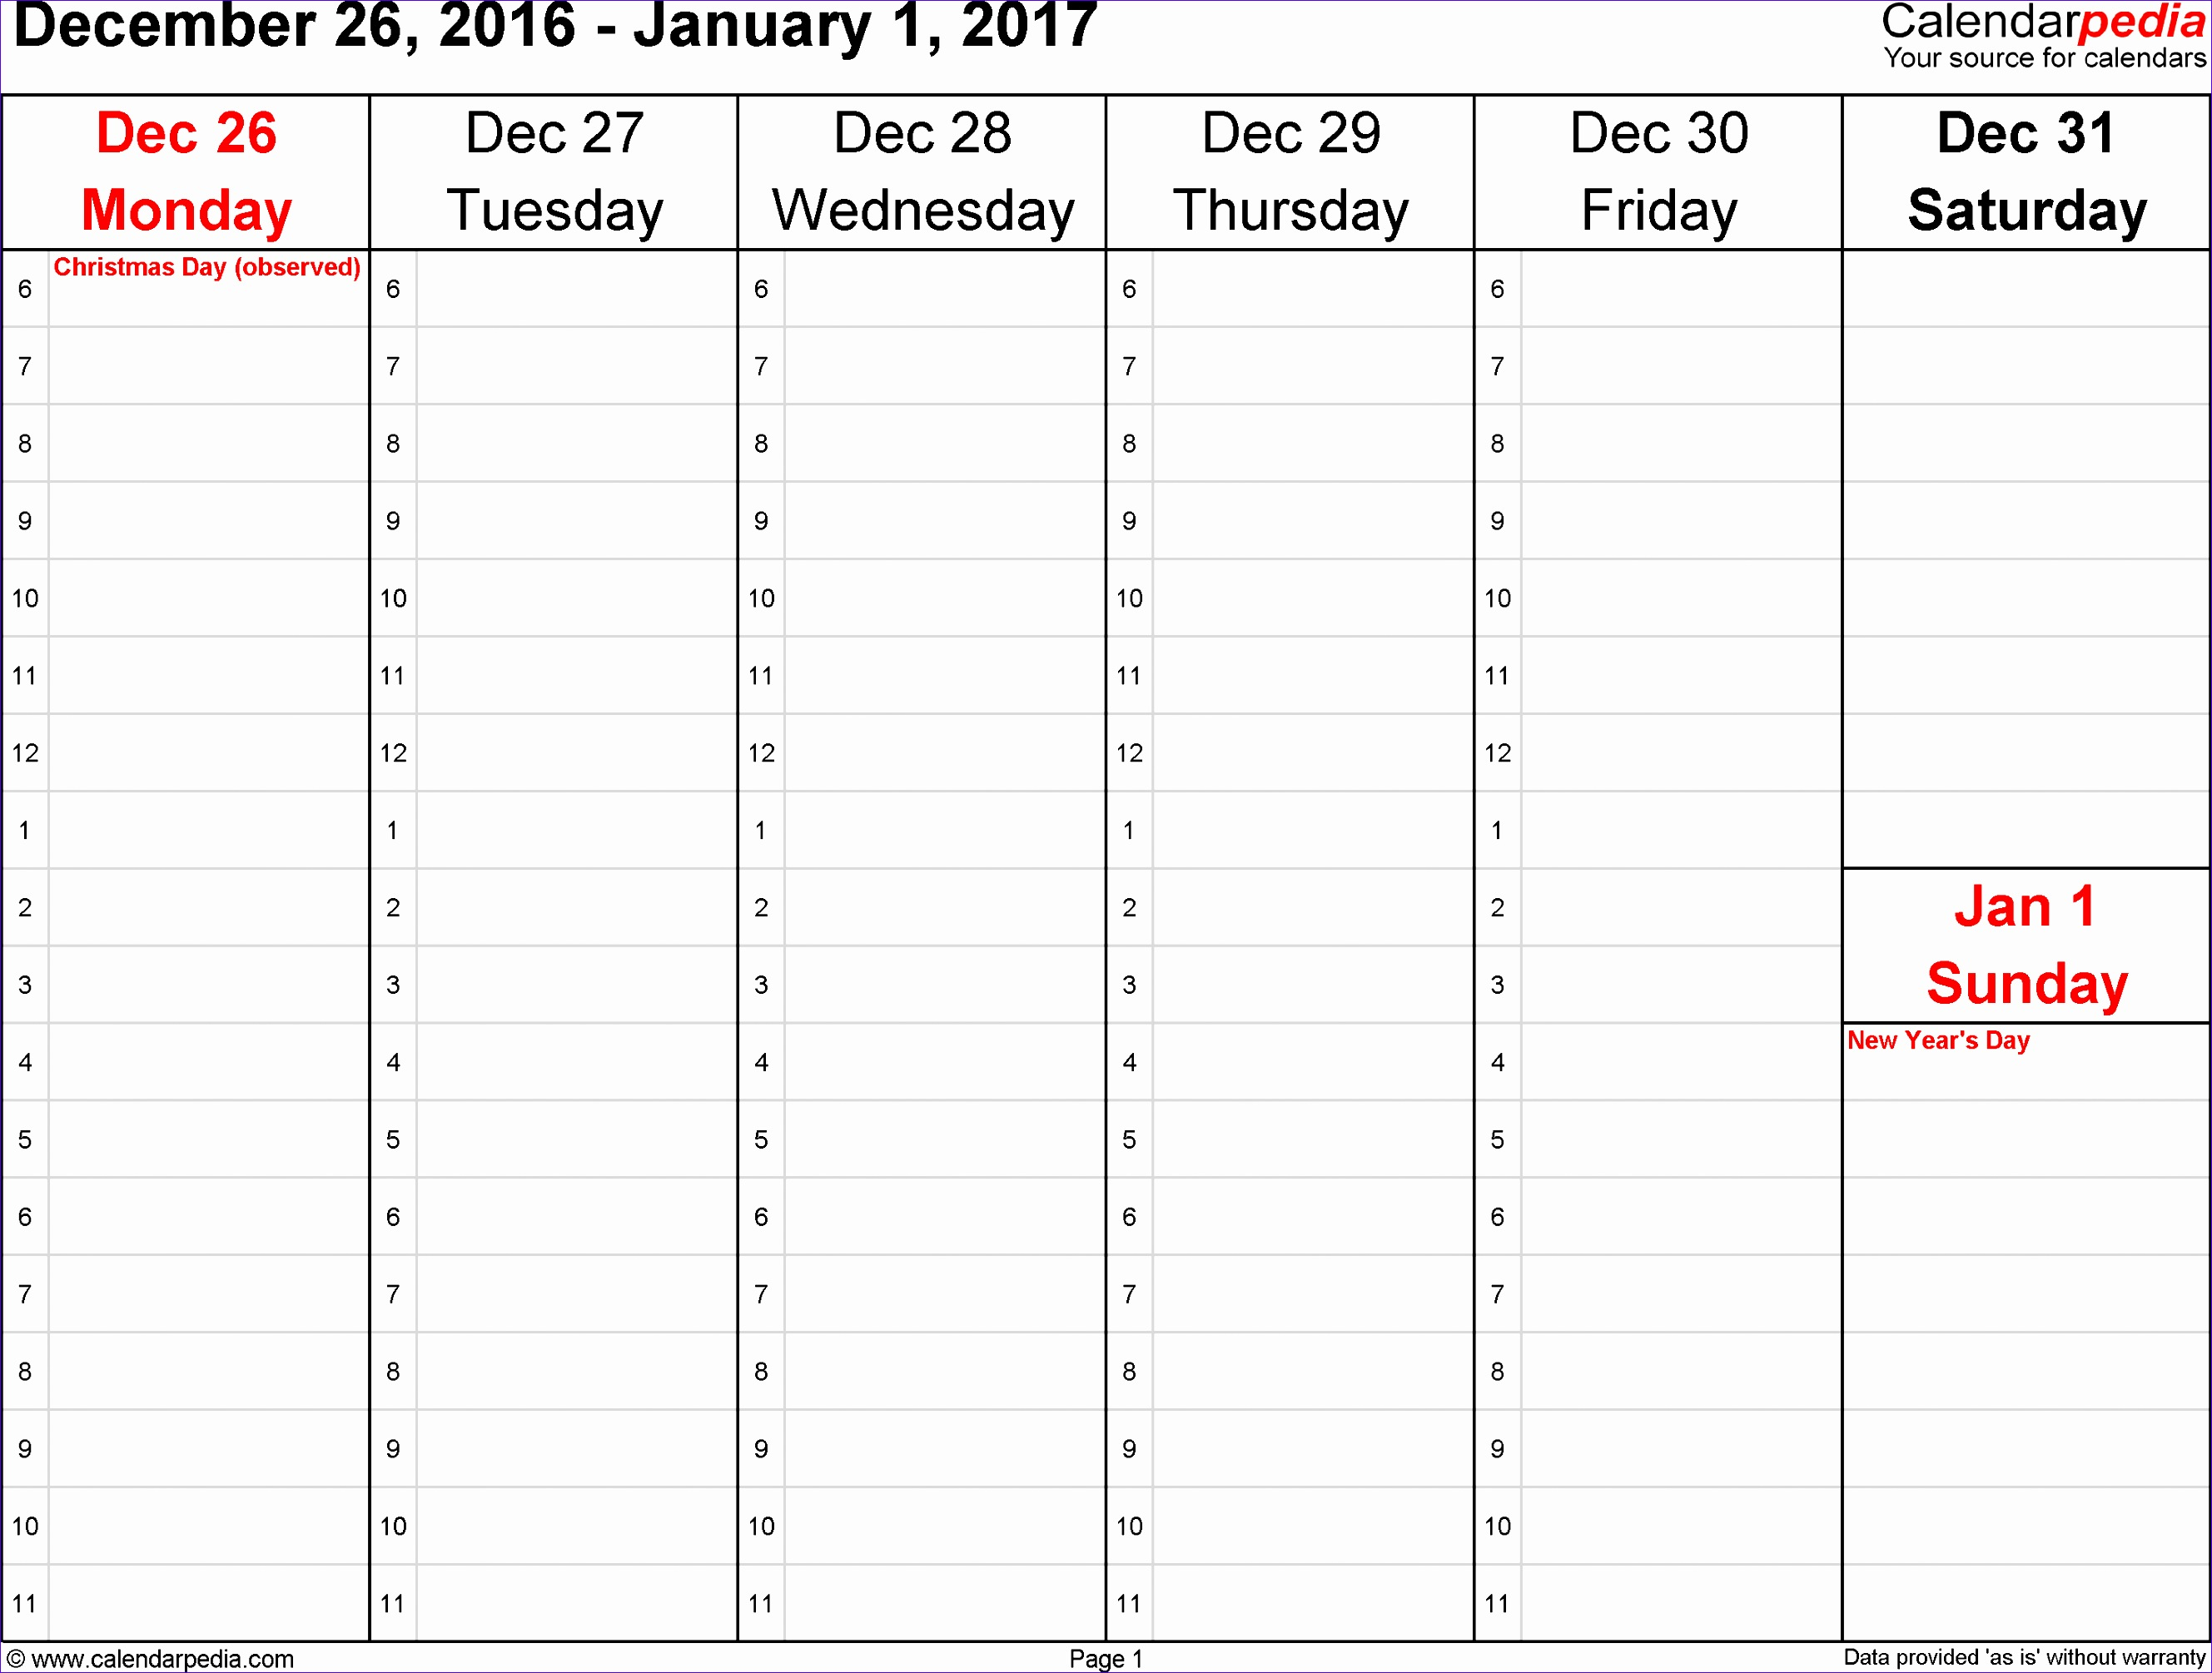 Work Hours Excel Template Dhsq4 Inspirational Weekly Calendar 2017 for Excel 12 Free Printable Templates